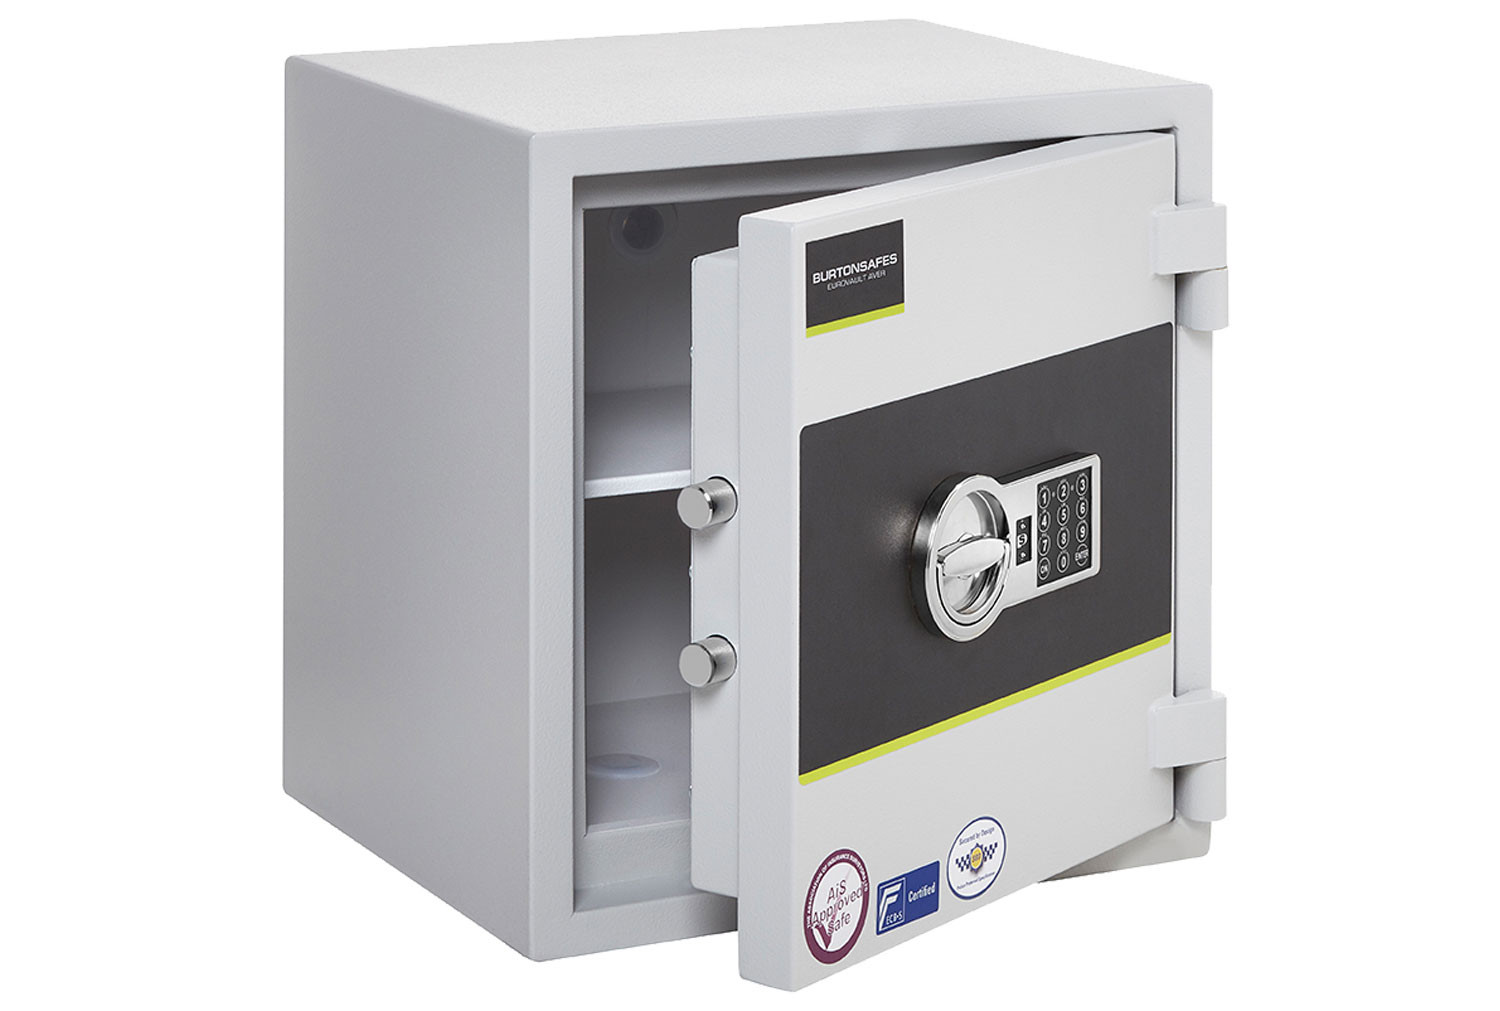 Burton Eurovault Aver Grade 0 Size 1 Safe With Electronic Lock (32ltrs)